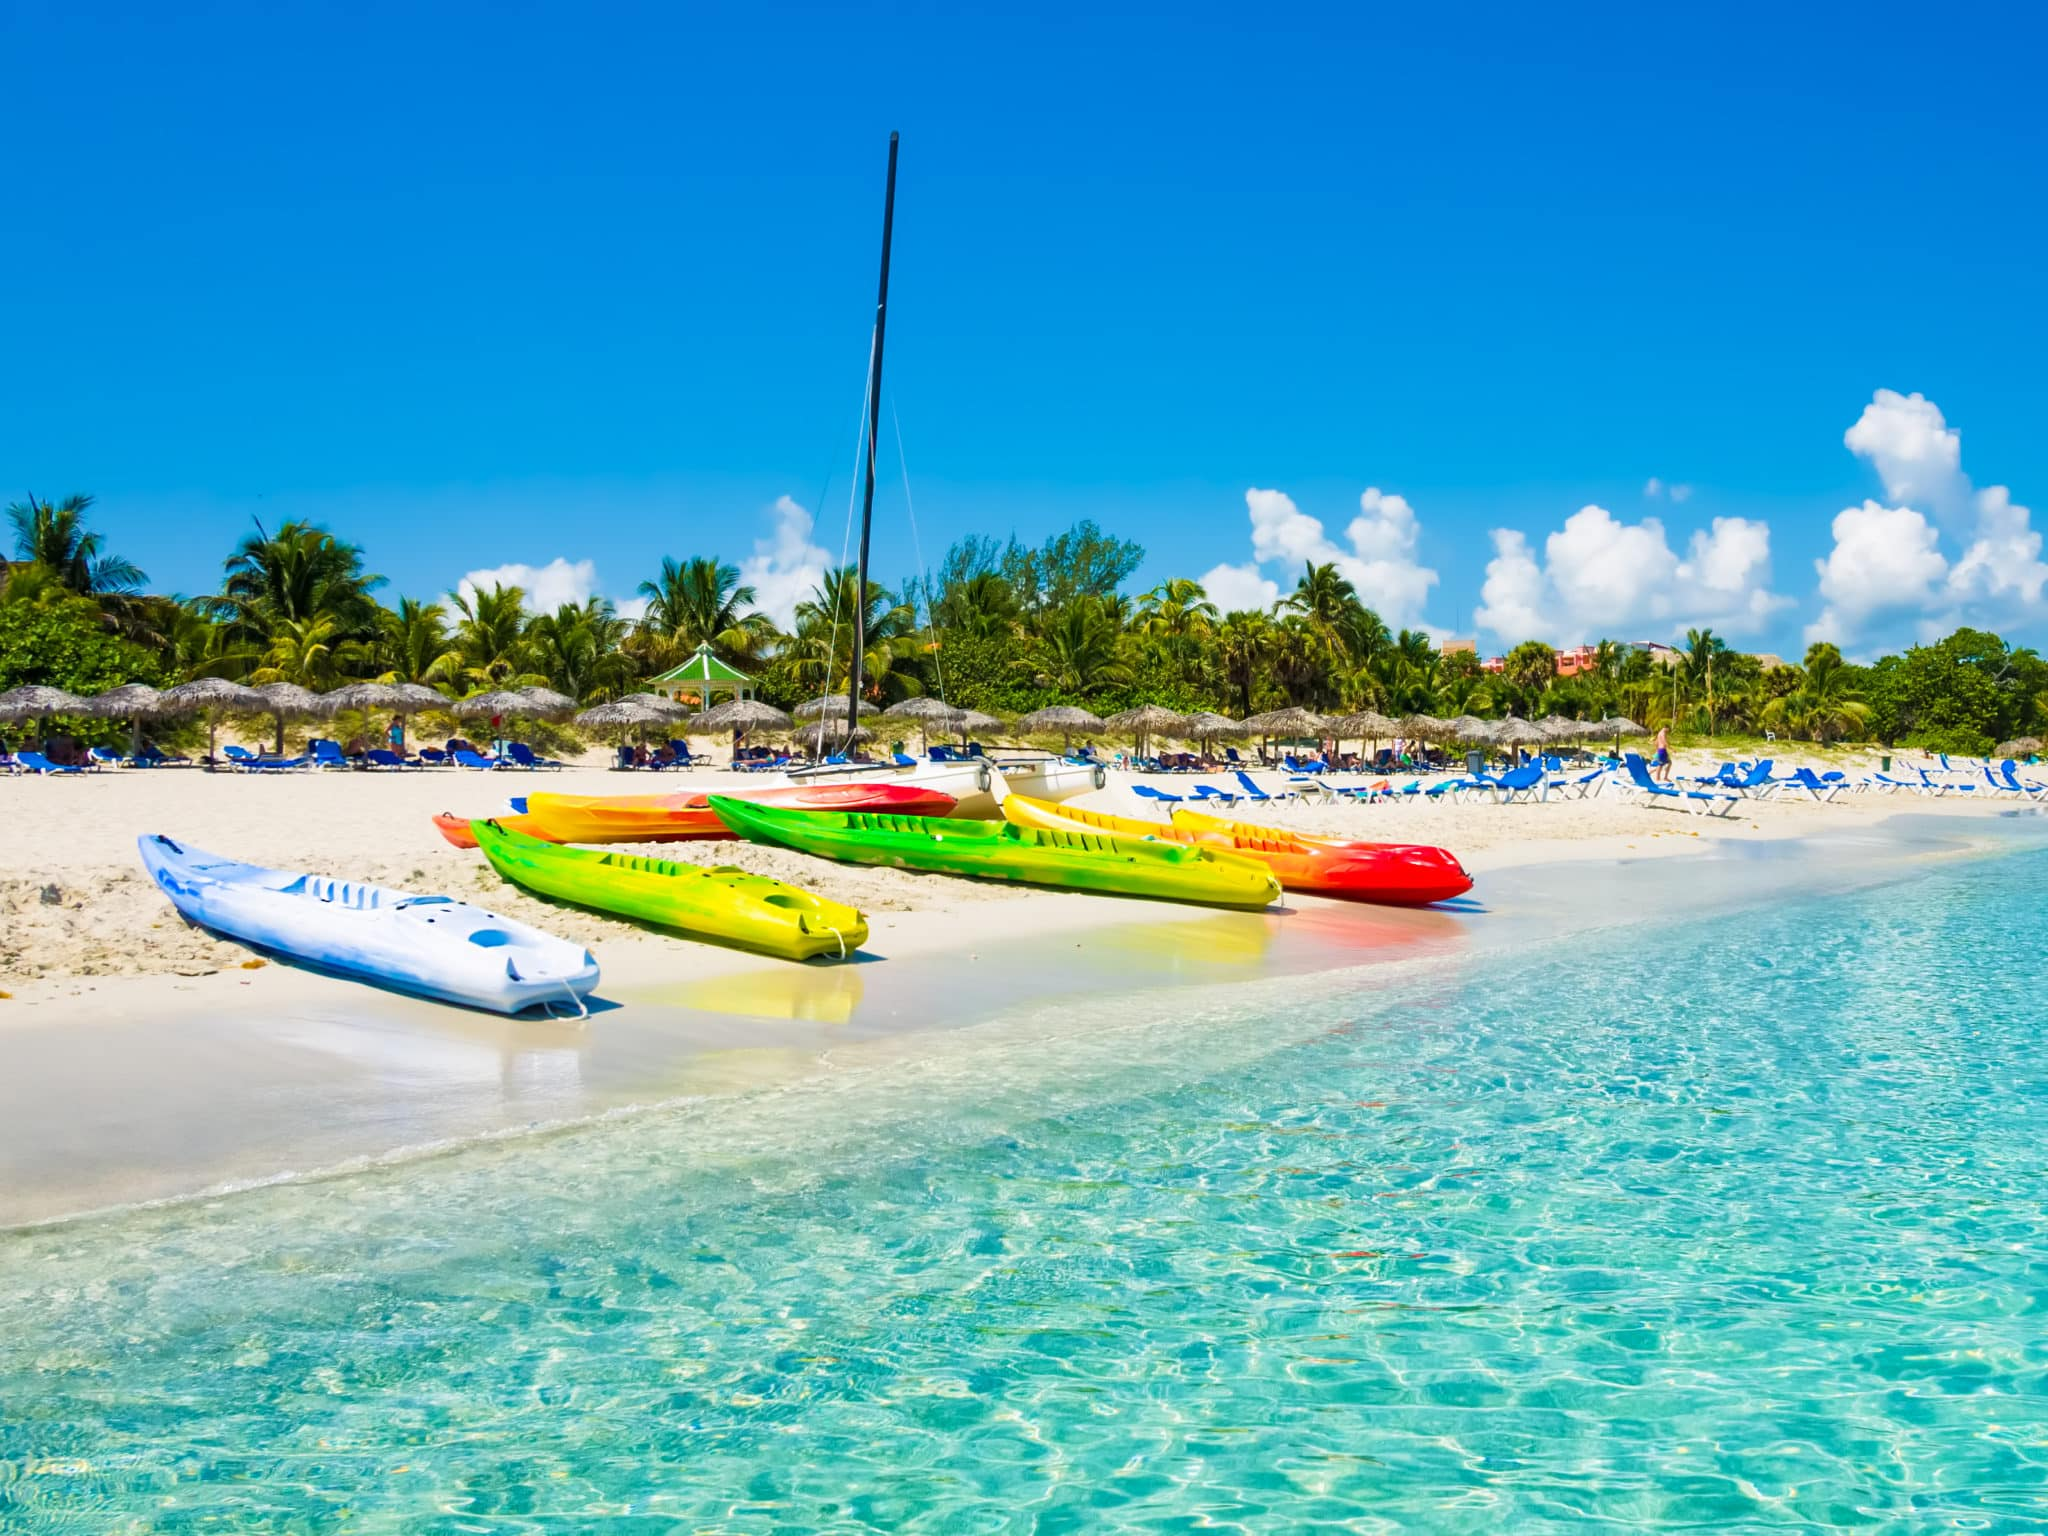 Kayaks and sailing boats on the beautiful beach of Varadero in Cuba (image taken from the sea) one week in Cuba